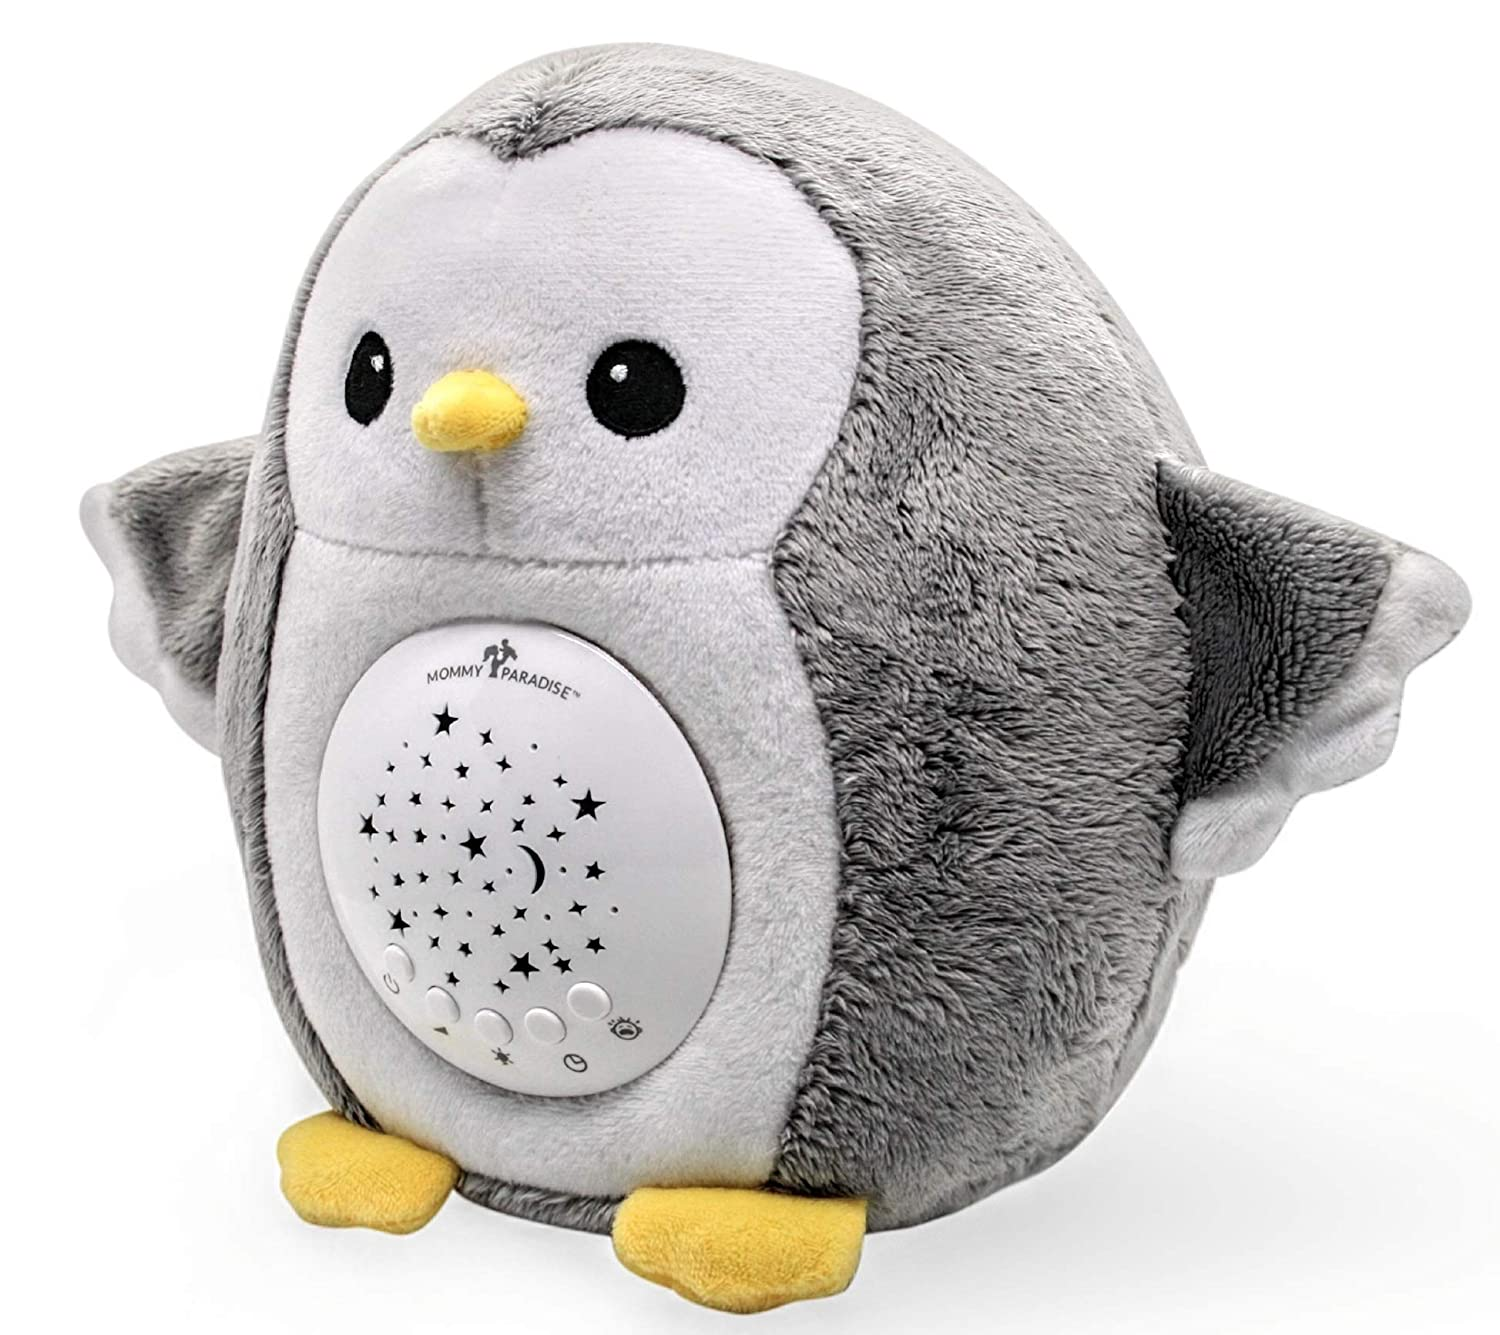 Baby Gifts Soother Sound Machine, White Noise Sleep Aid, Cry Sensor & Night  Light Projector